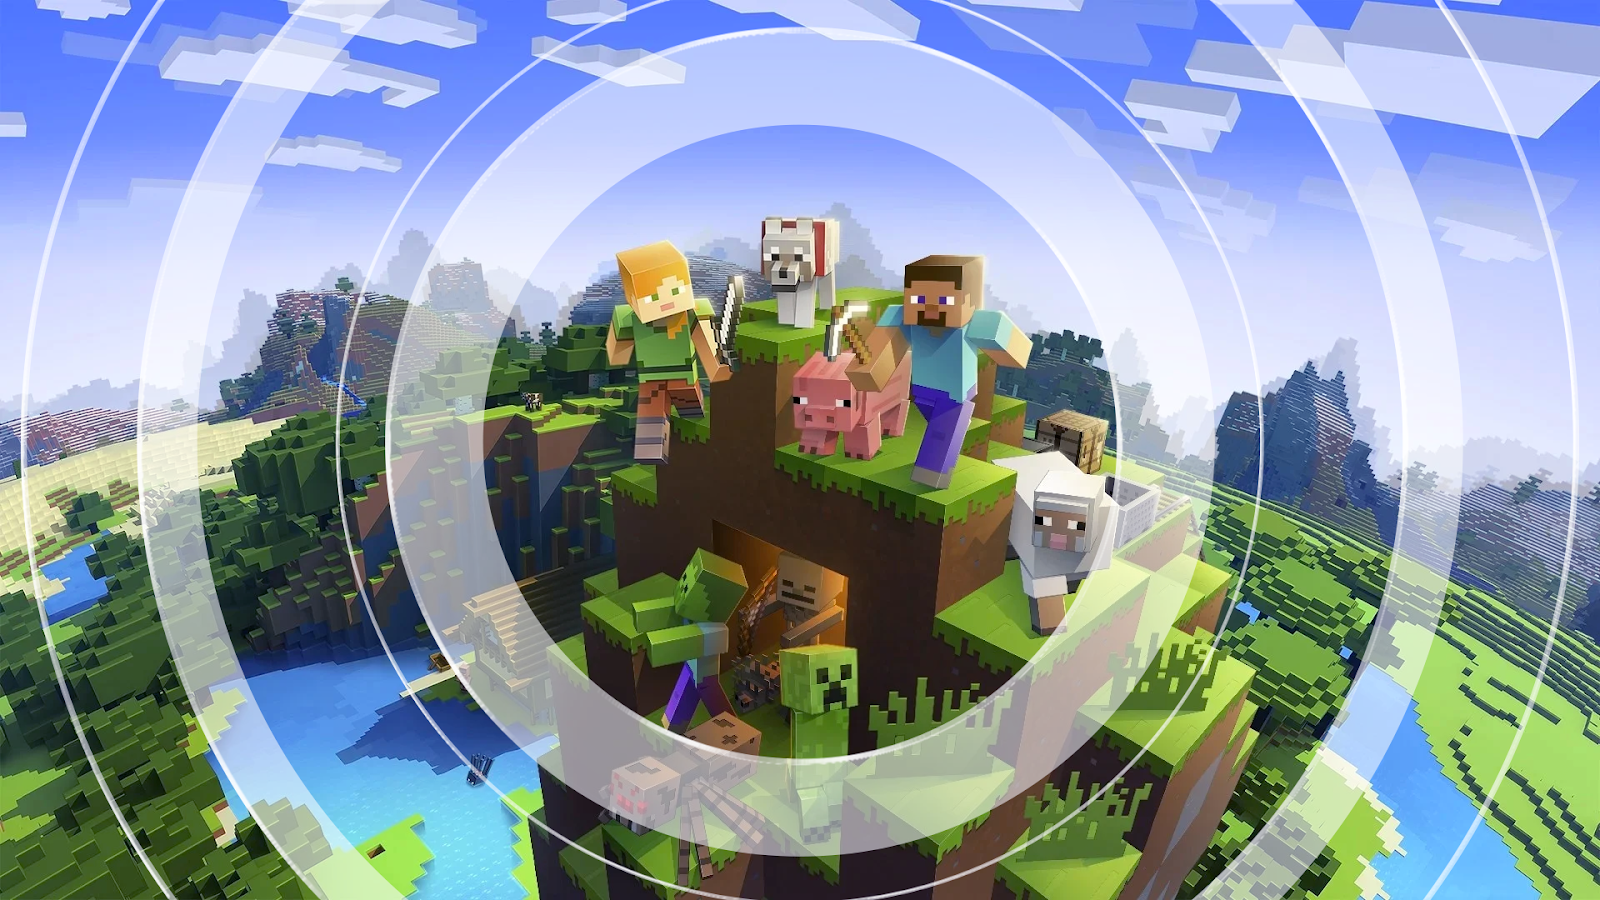 Minecraft avatars with rings expanding outwards, representing the sound waves.